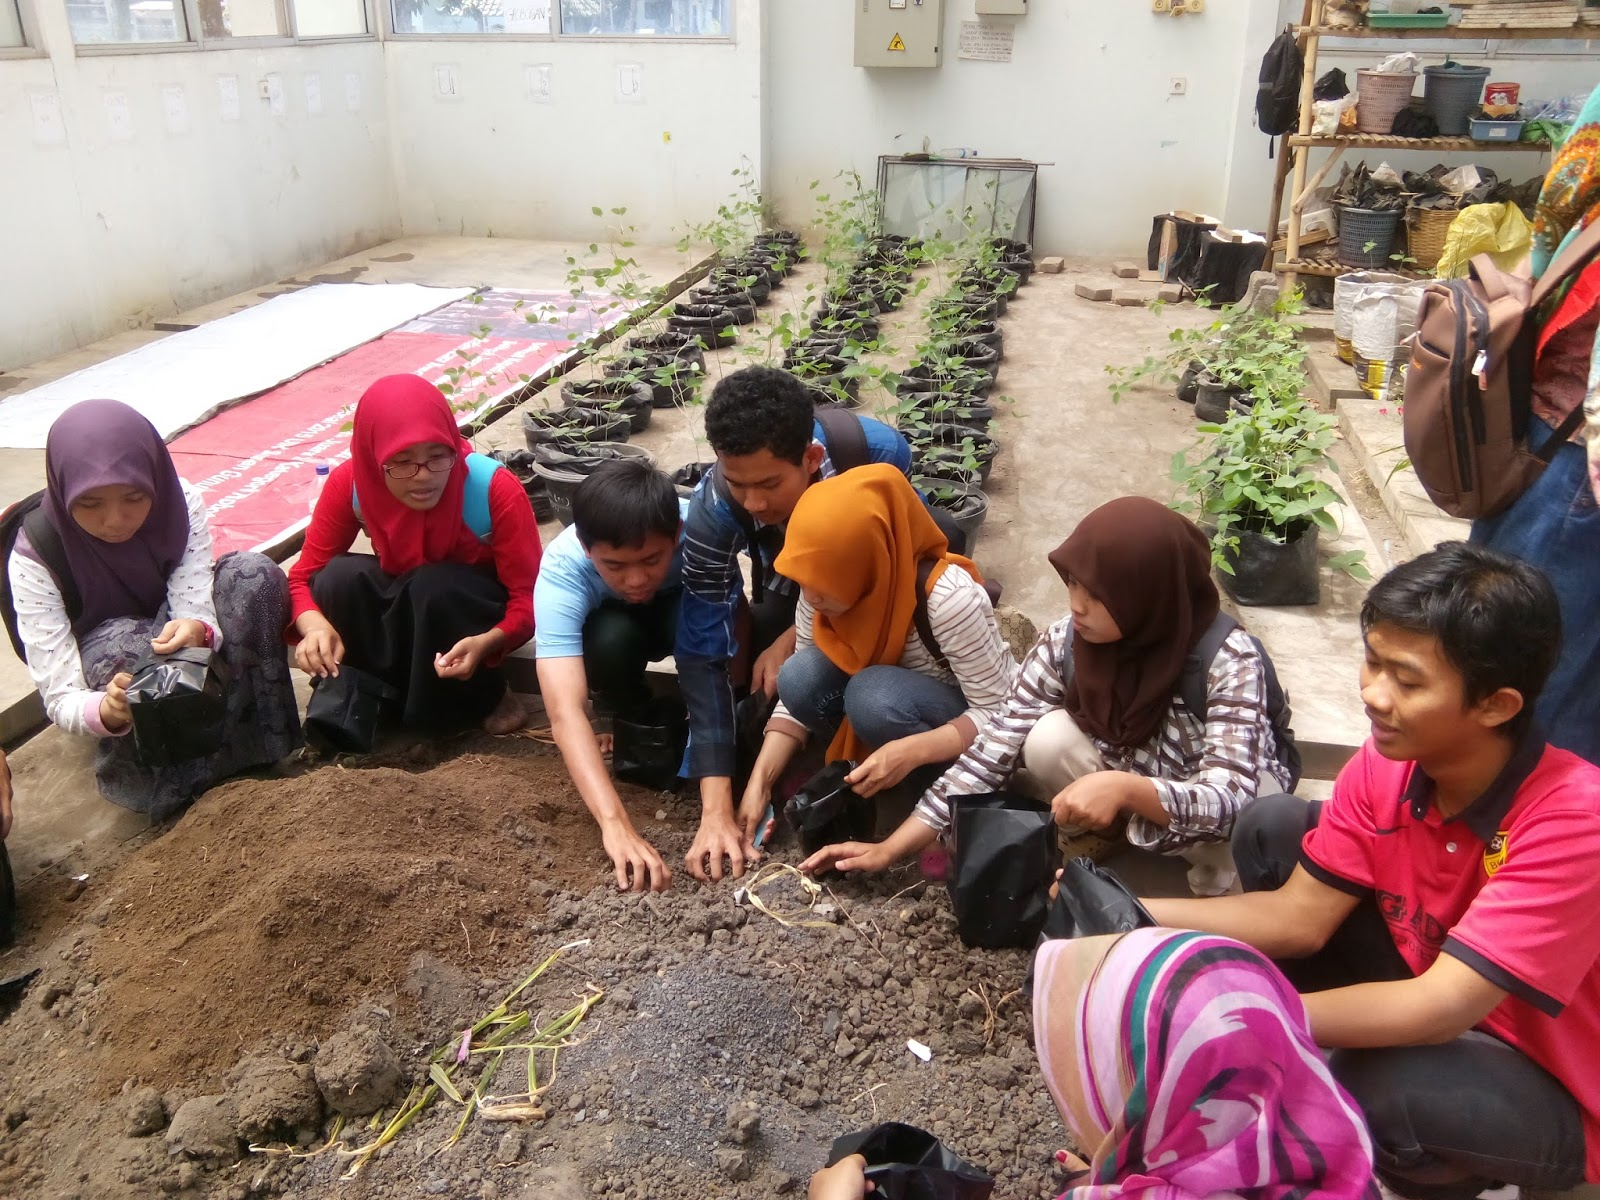 Youth for Climate Change, Indonesia